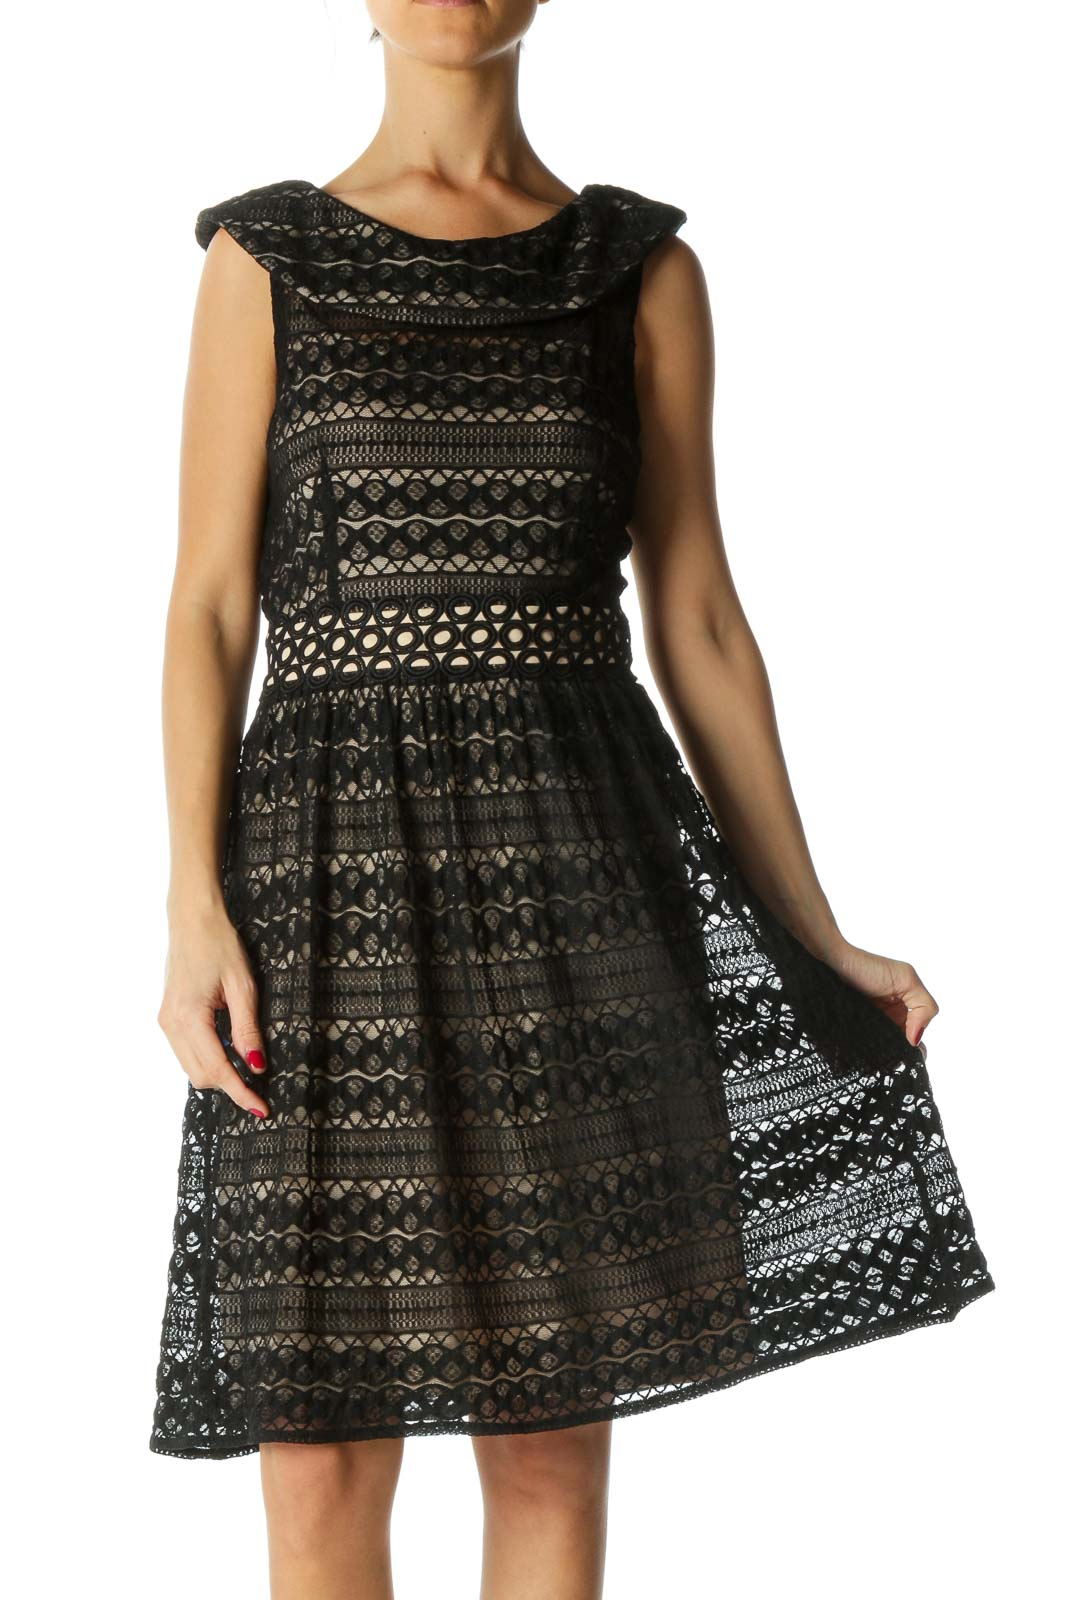 Beige and Black Lace Dress Front